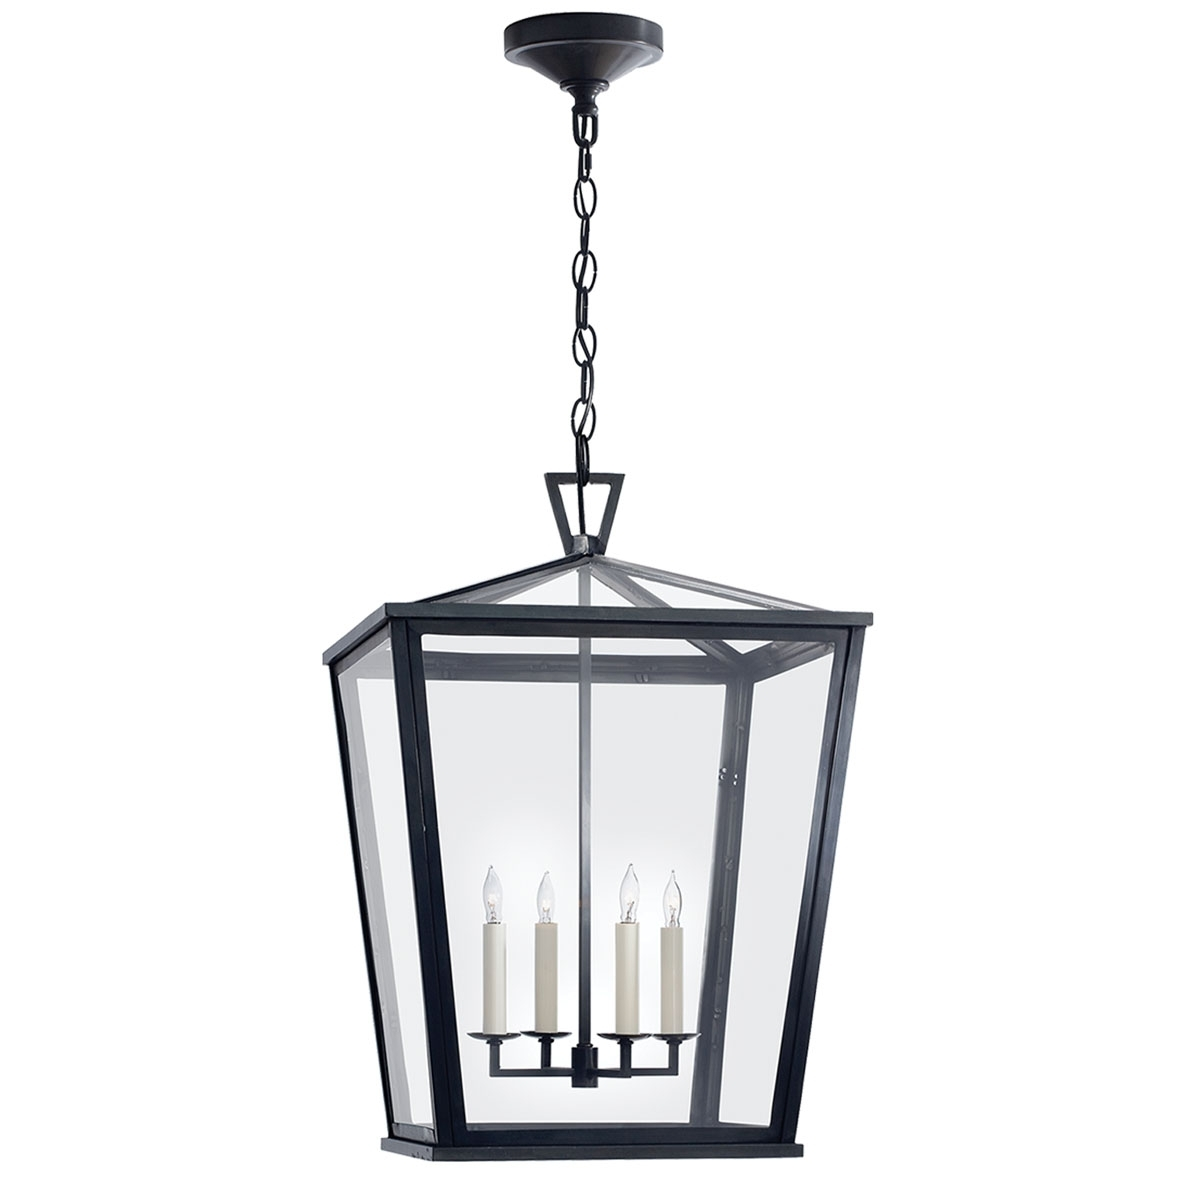 Featured Photo of Outdoor Hanging Light Fixtures in Black